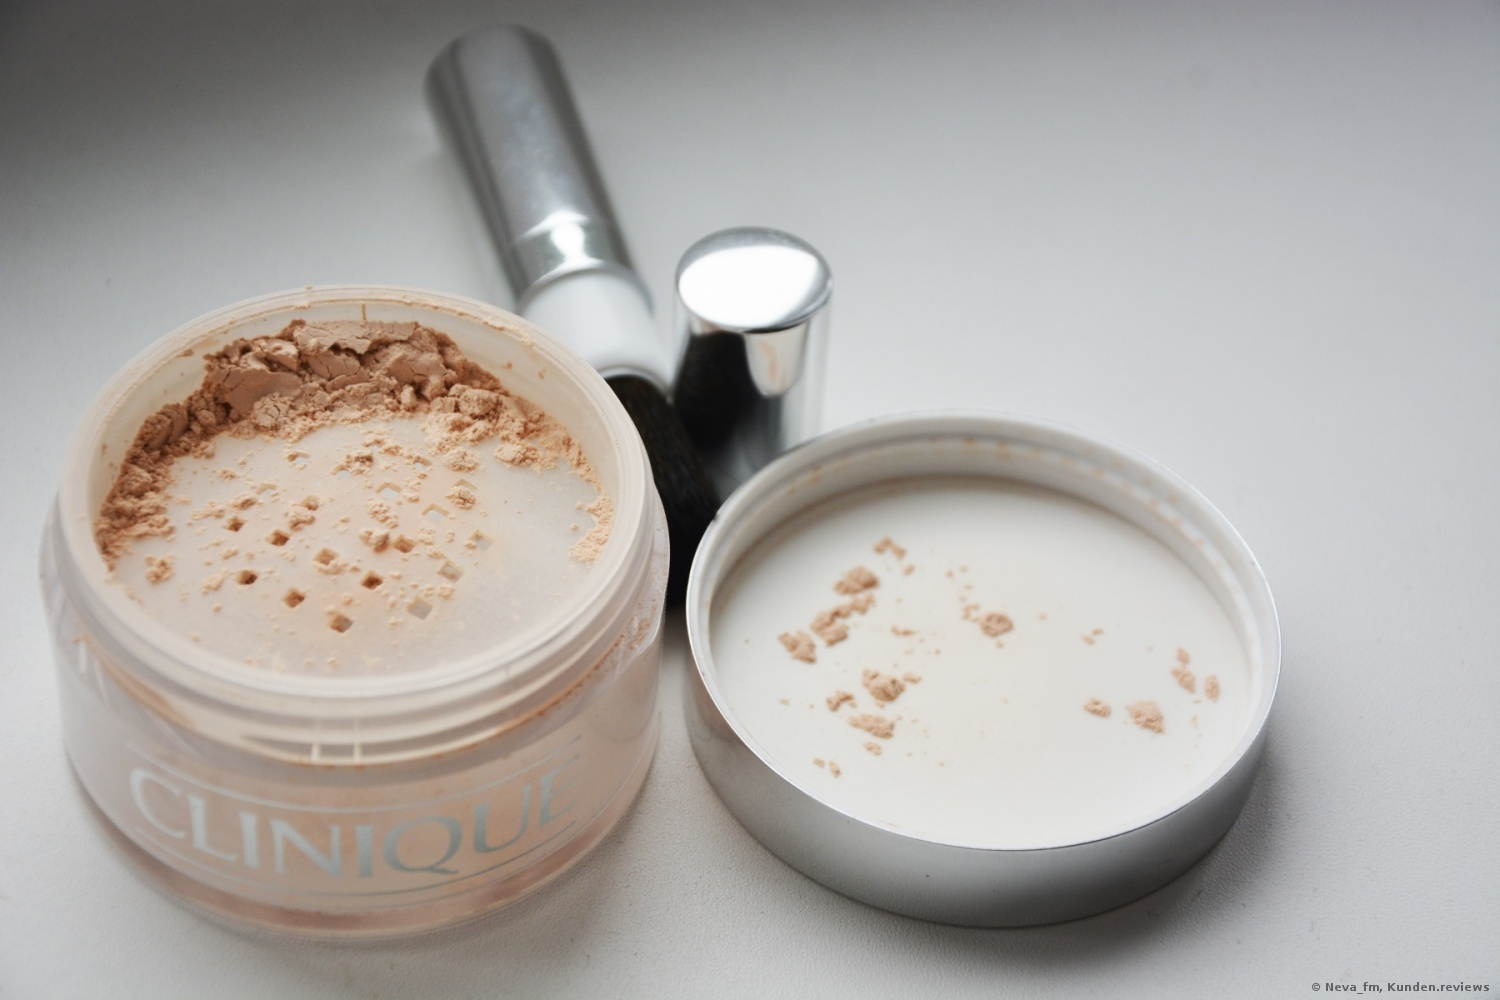 Clinique Puder Blended Face Powder and Brush